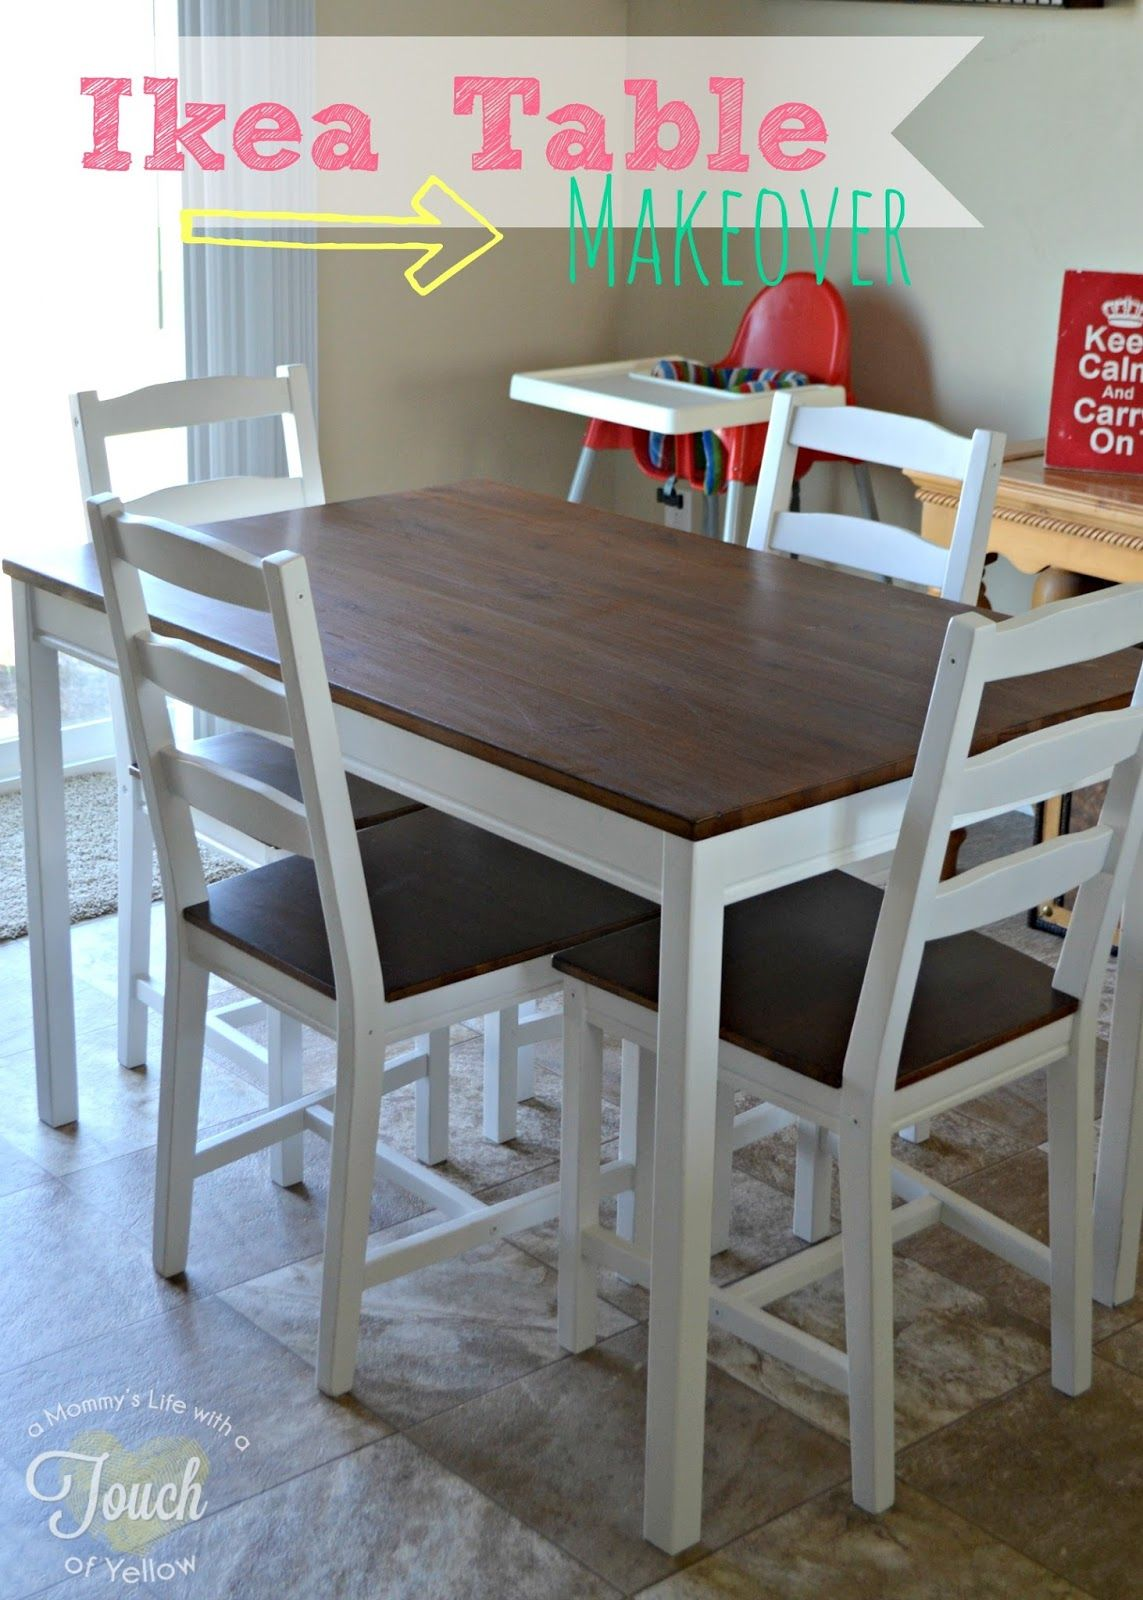 Diy dining table makeover - A Mommy S Life With A Touch Of Yellow Ikea Kitchen Table Makeover